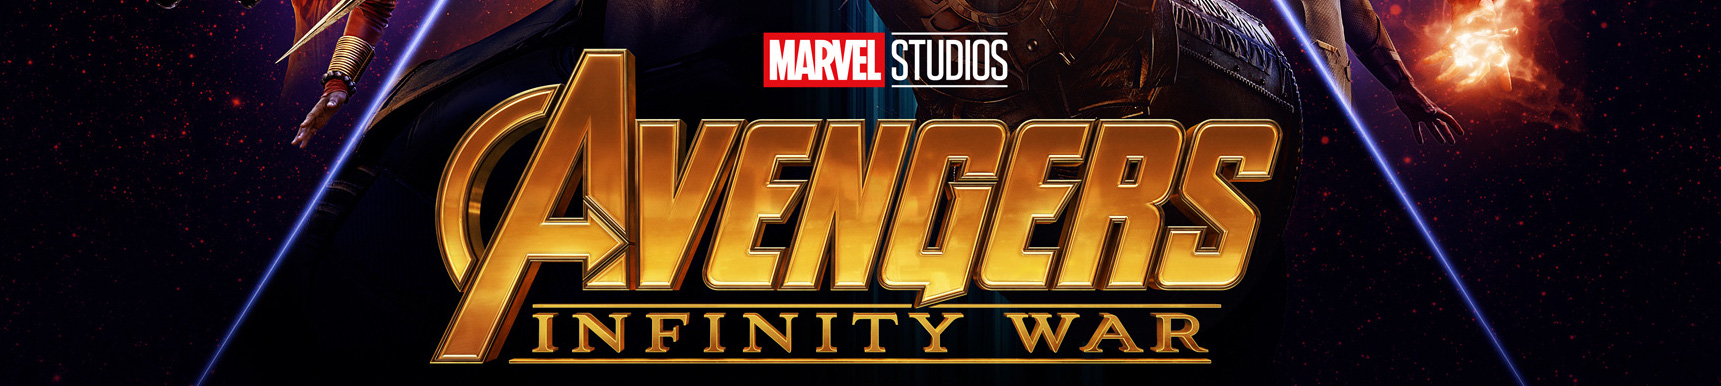 Avengers: Infinity War Recension (inkl video)